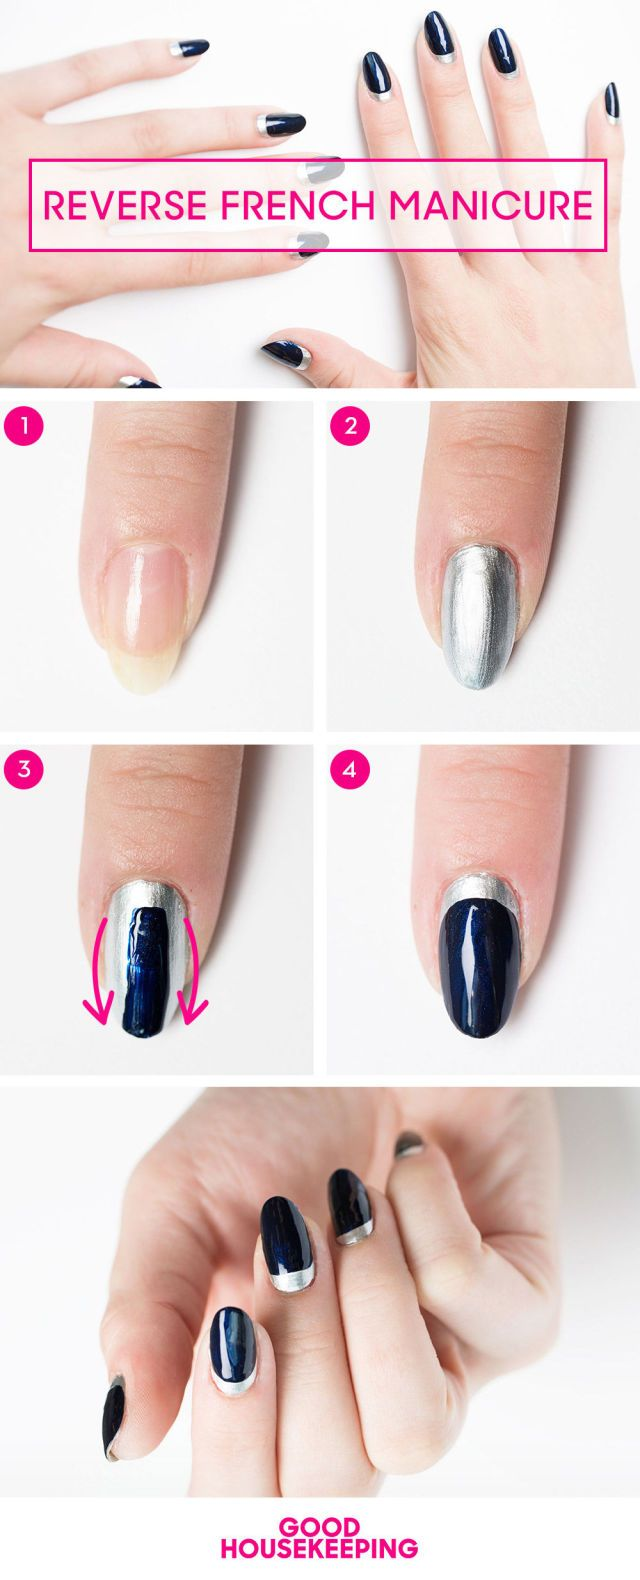 Diy Nail Art Designs That Are Super Easy To Do At Home 2 Fashionglint